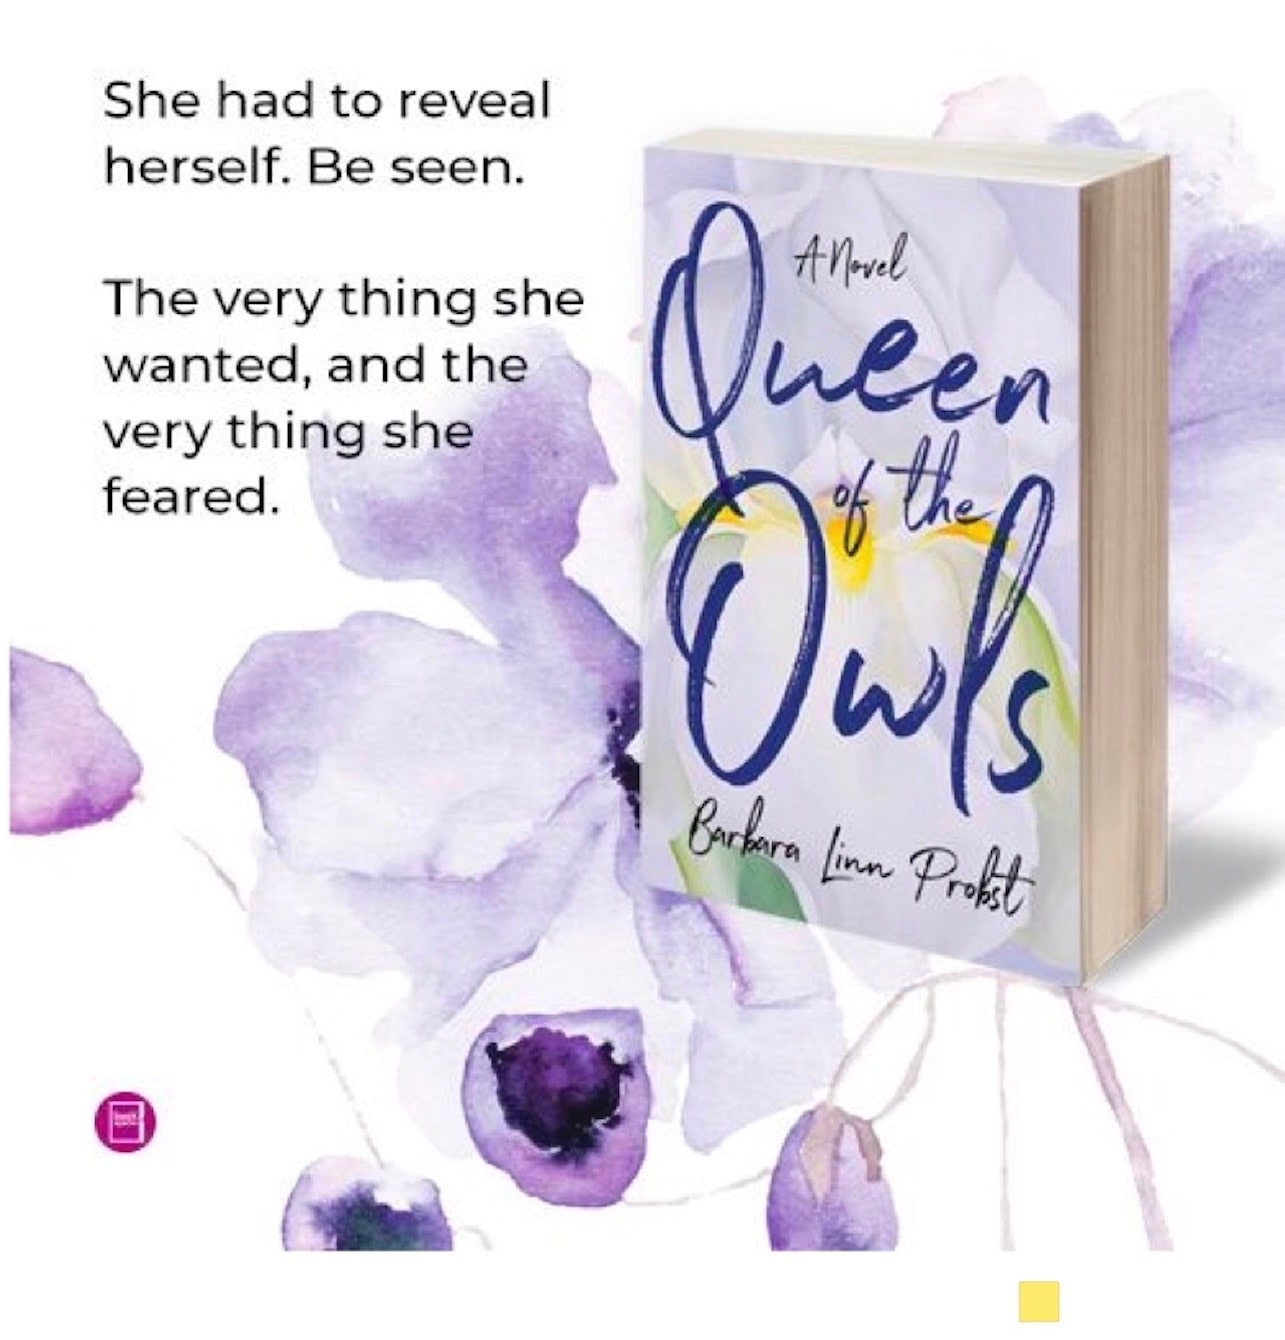 Queen of the Owls: A Novel Book cover